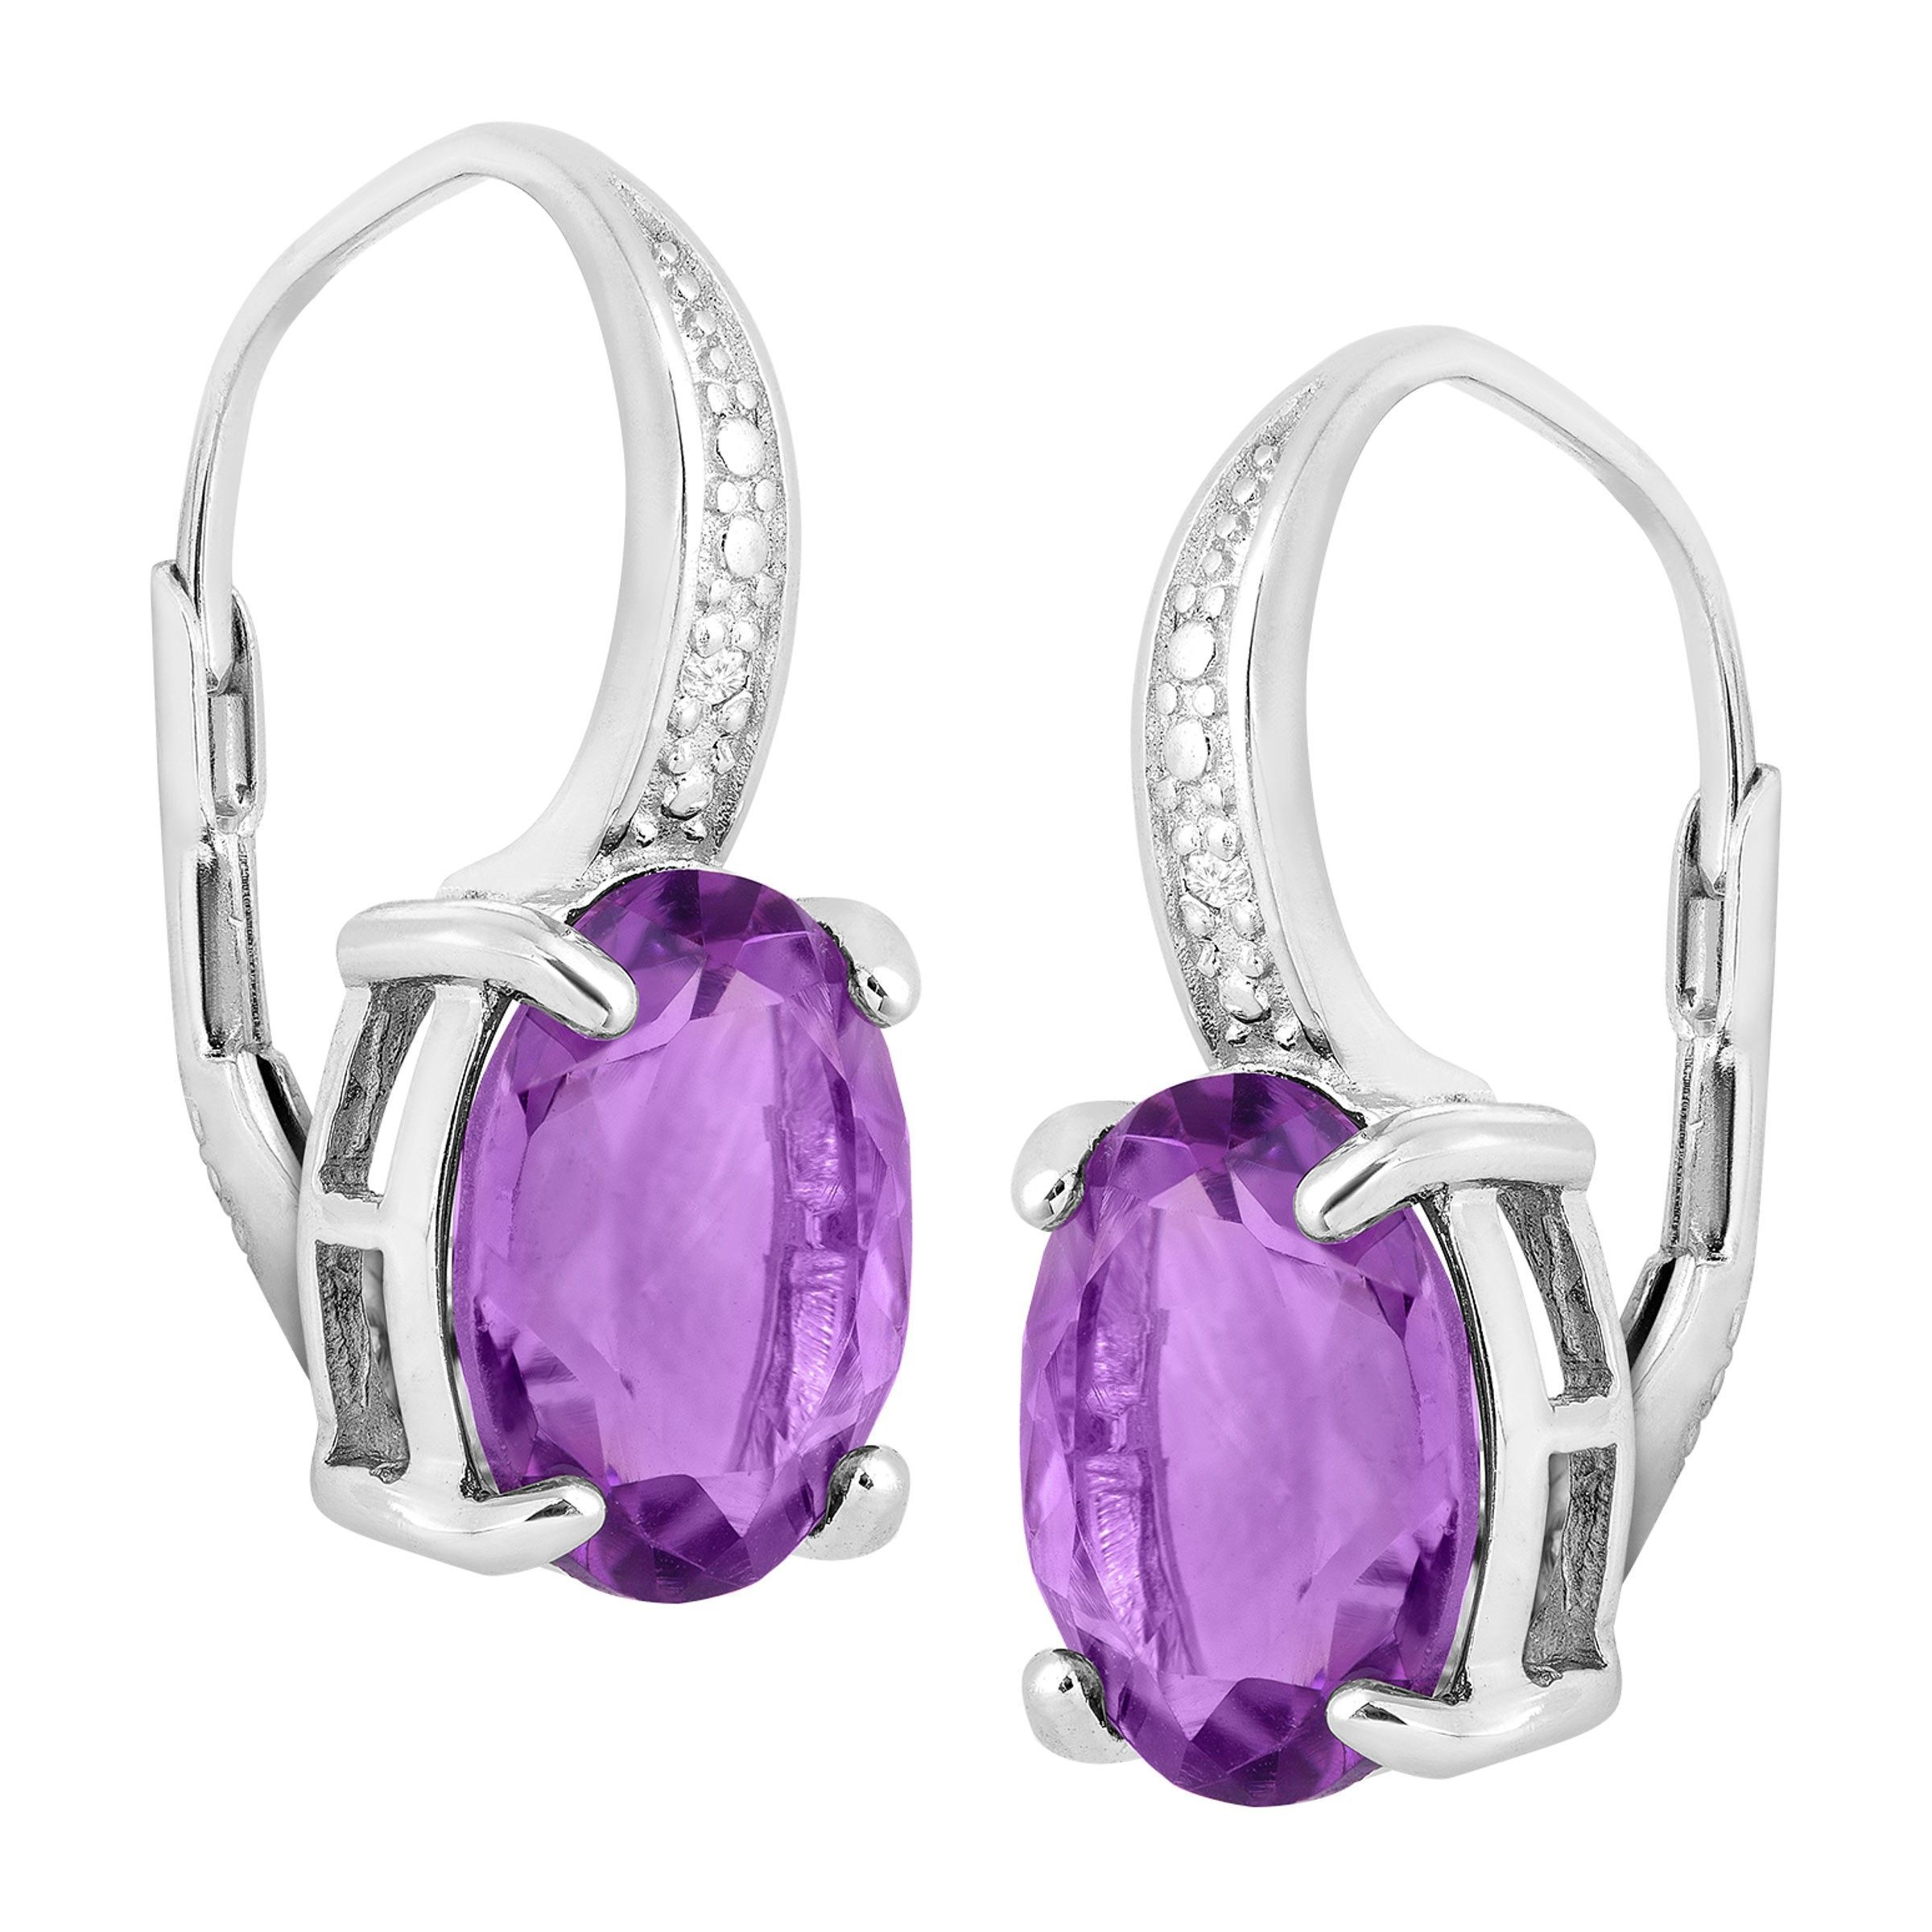 Natural-Gemstone-Drop-Earrings-with-Diamonds-in-Sterling-Silver thumbnail 7